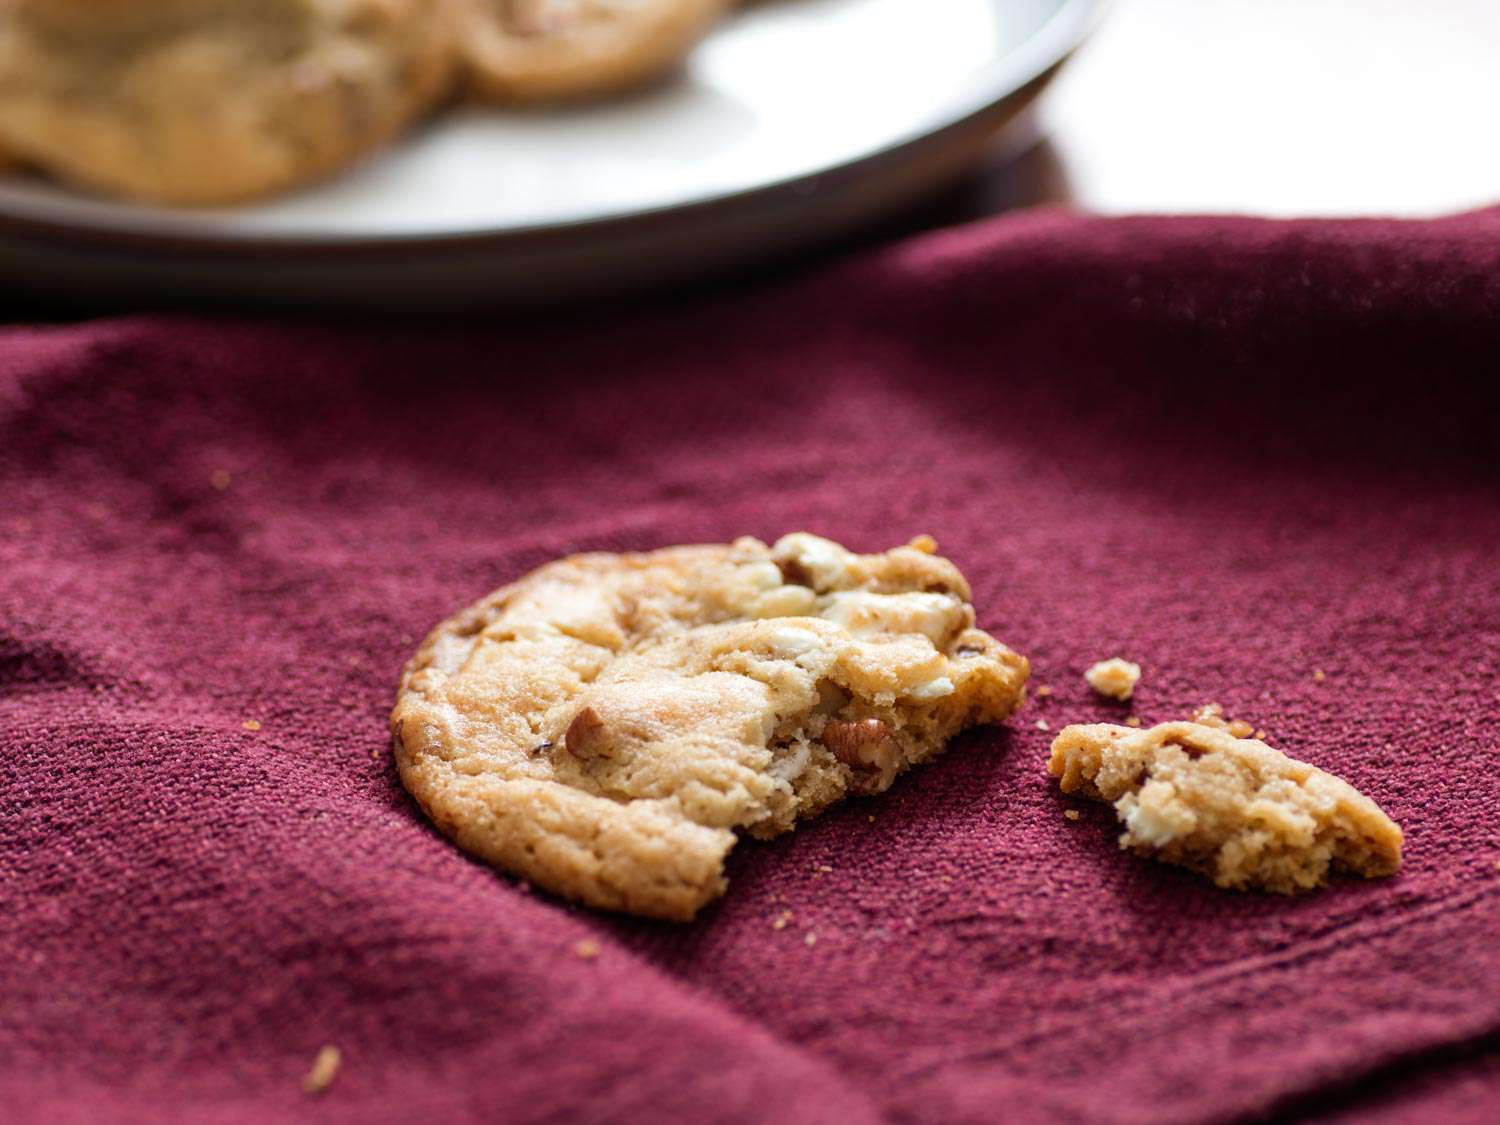 20170125-malted-white-chocolate-butterscotch-pecan-cookies-vicky-wasik-14.jpg